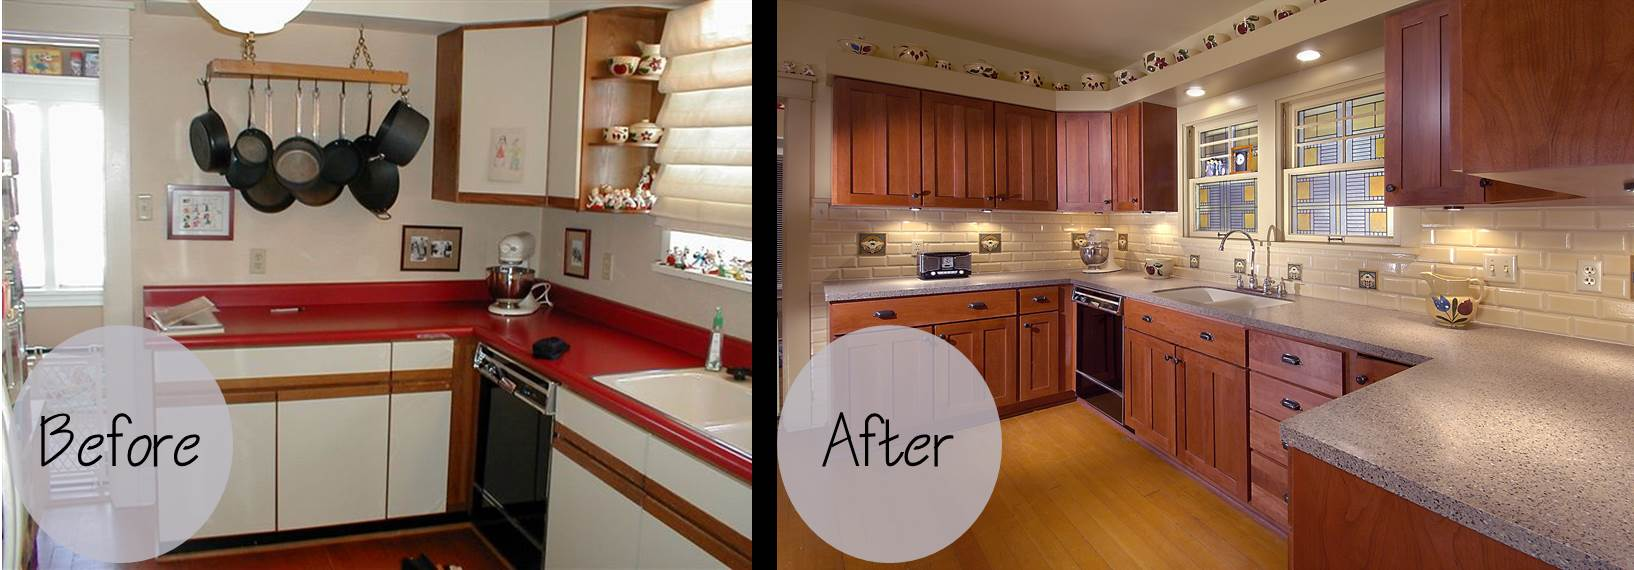 We Love Our Cabinet Refacing Service And So Do Our Customers. This Service  Allows You To Do An Affordable Kitchen Without Sacrificing On Style.